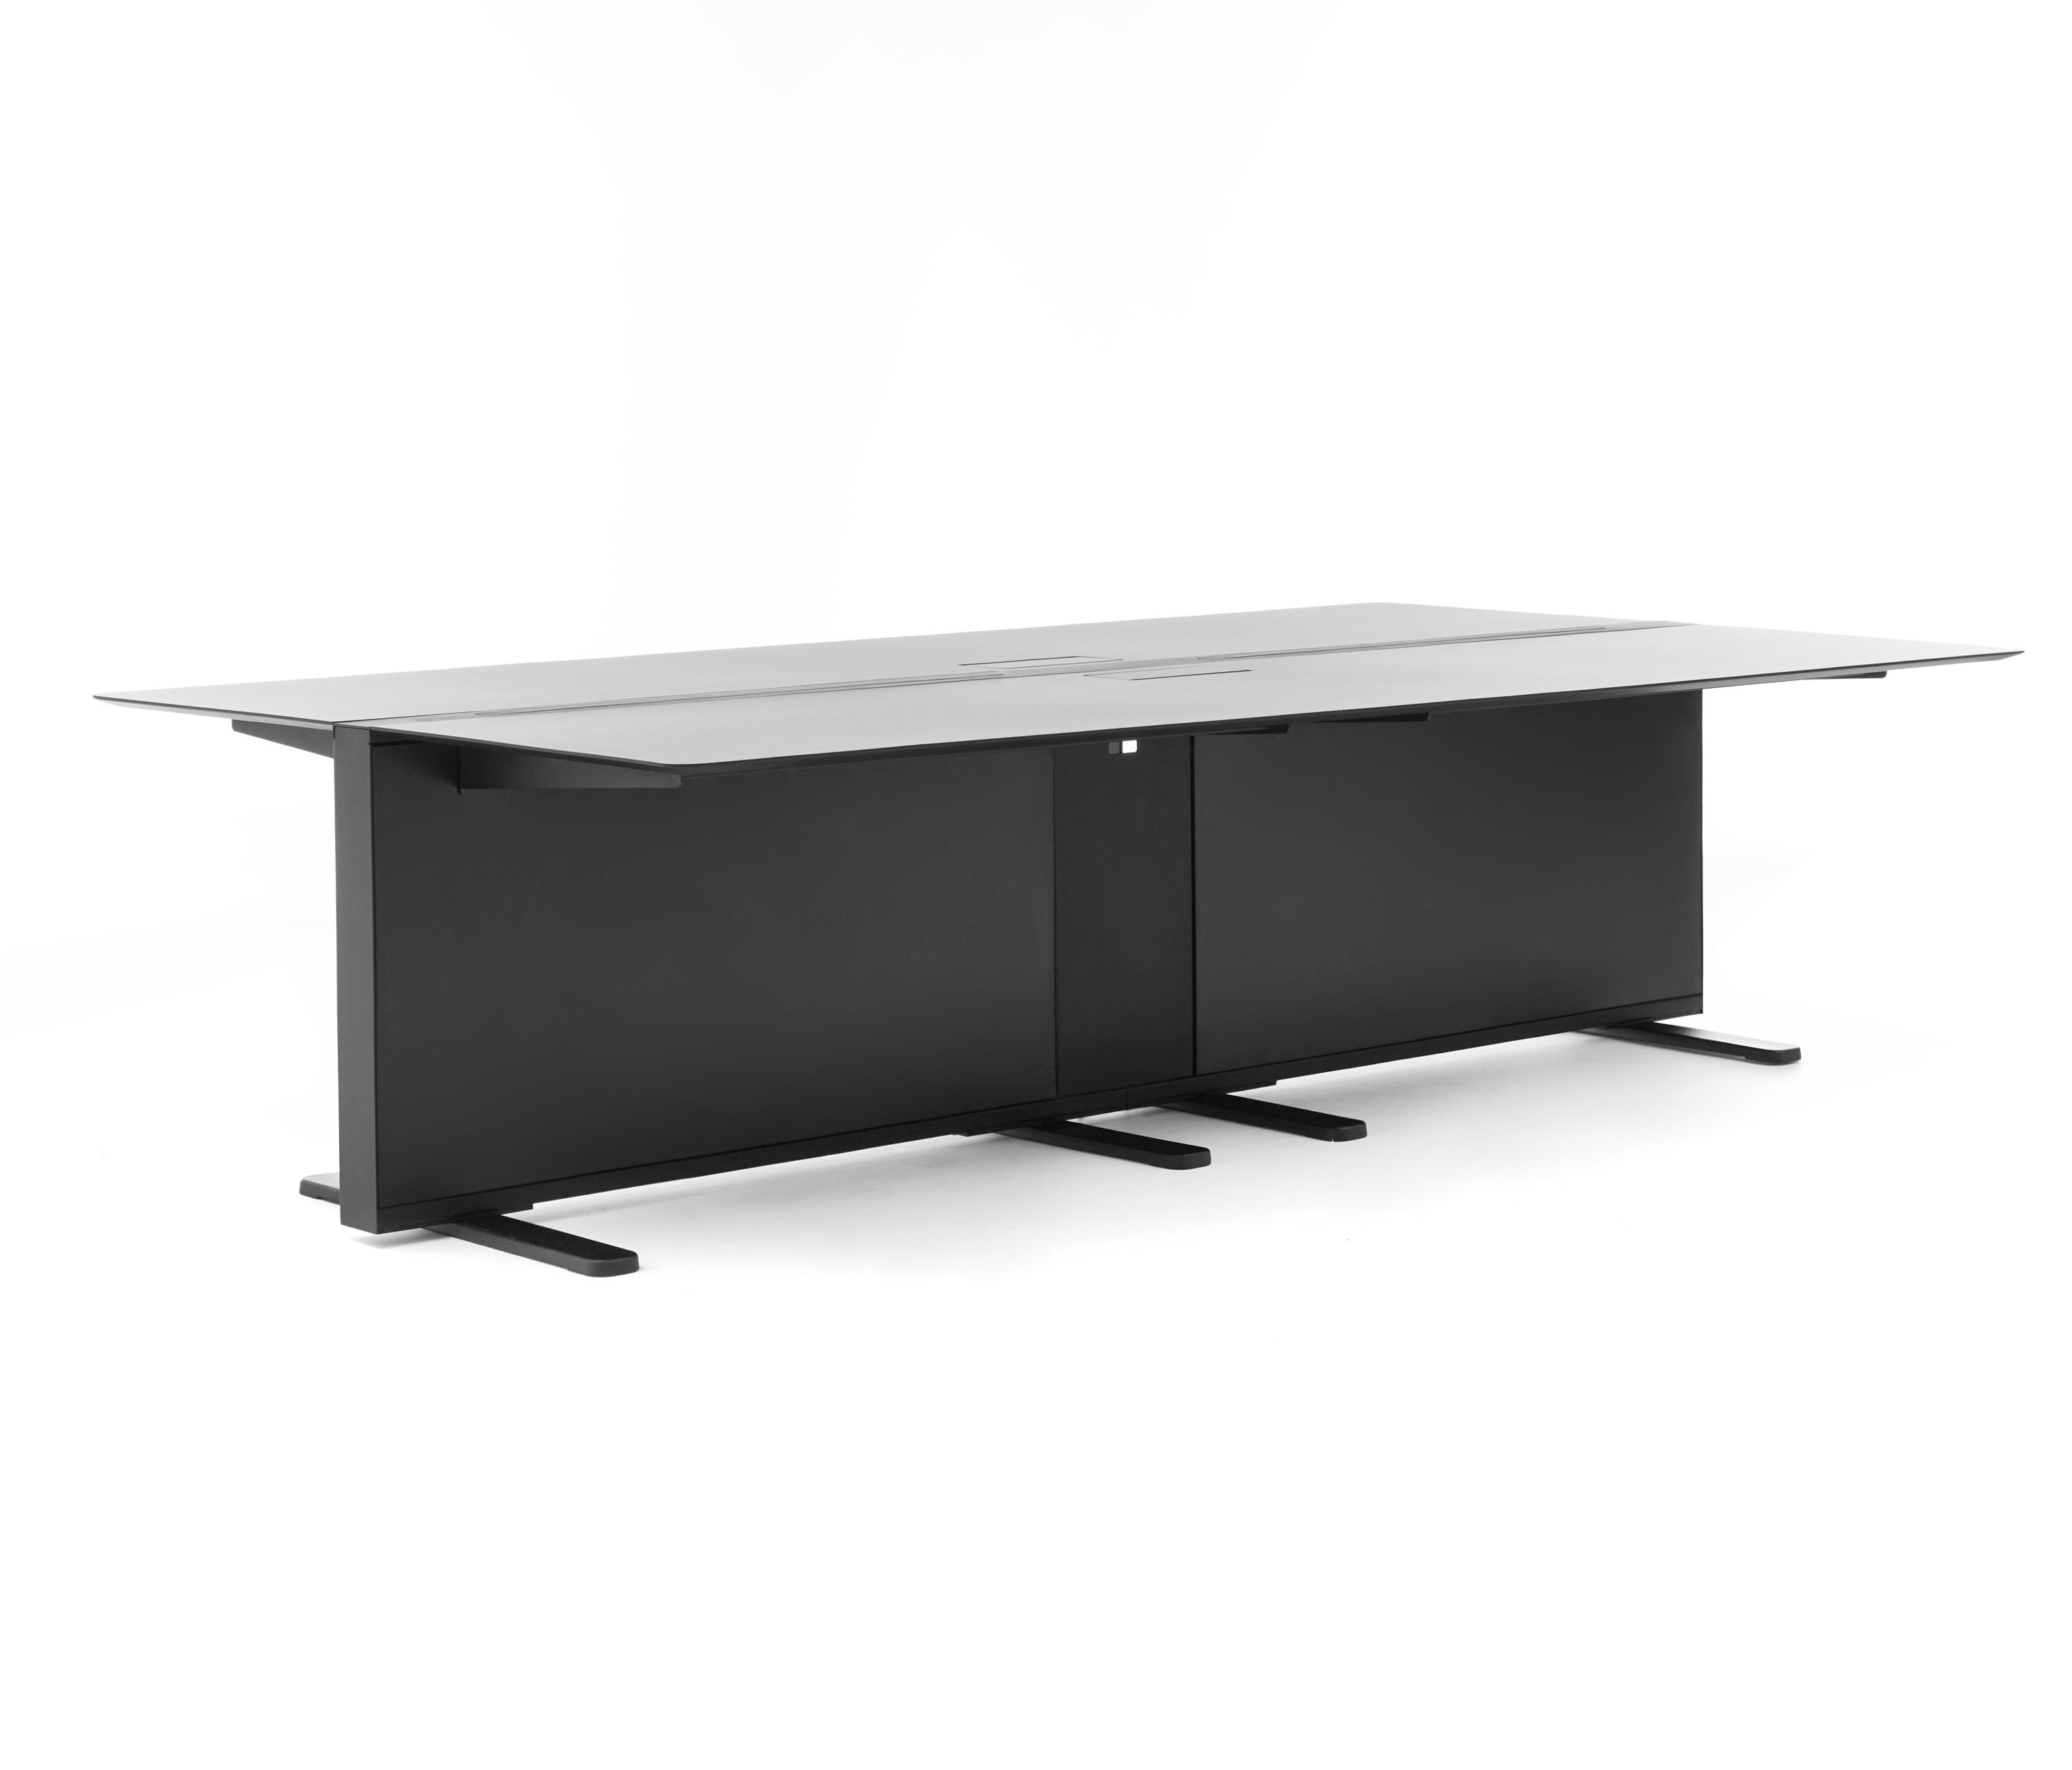 London Bench By Nurus - Desking Systems